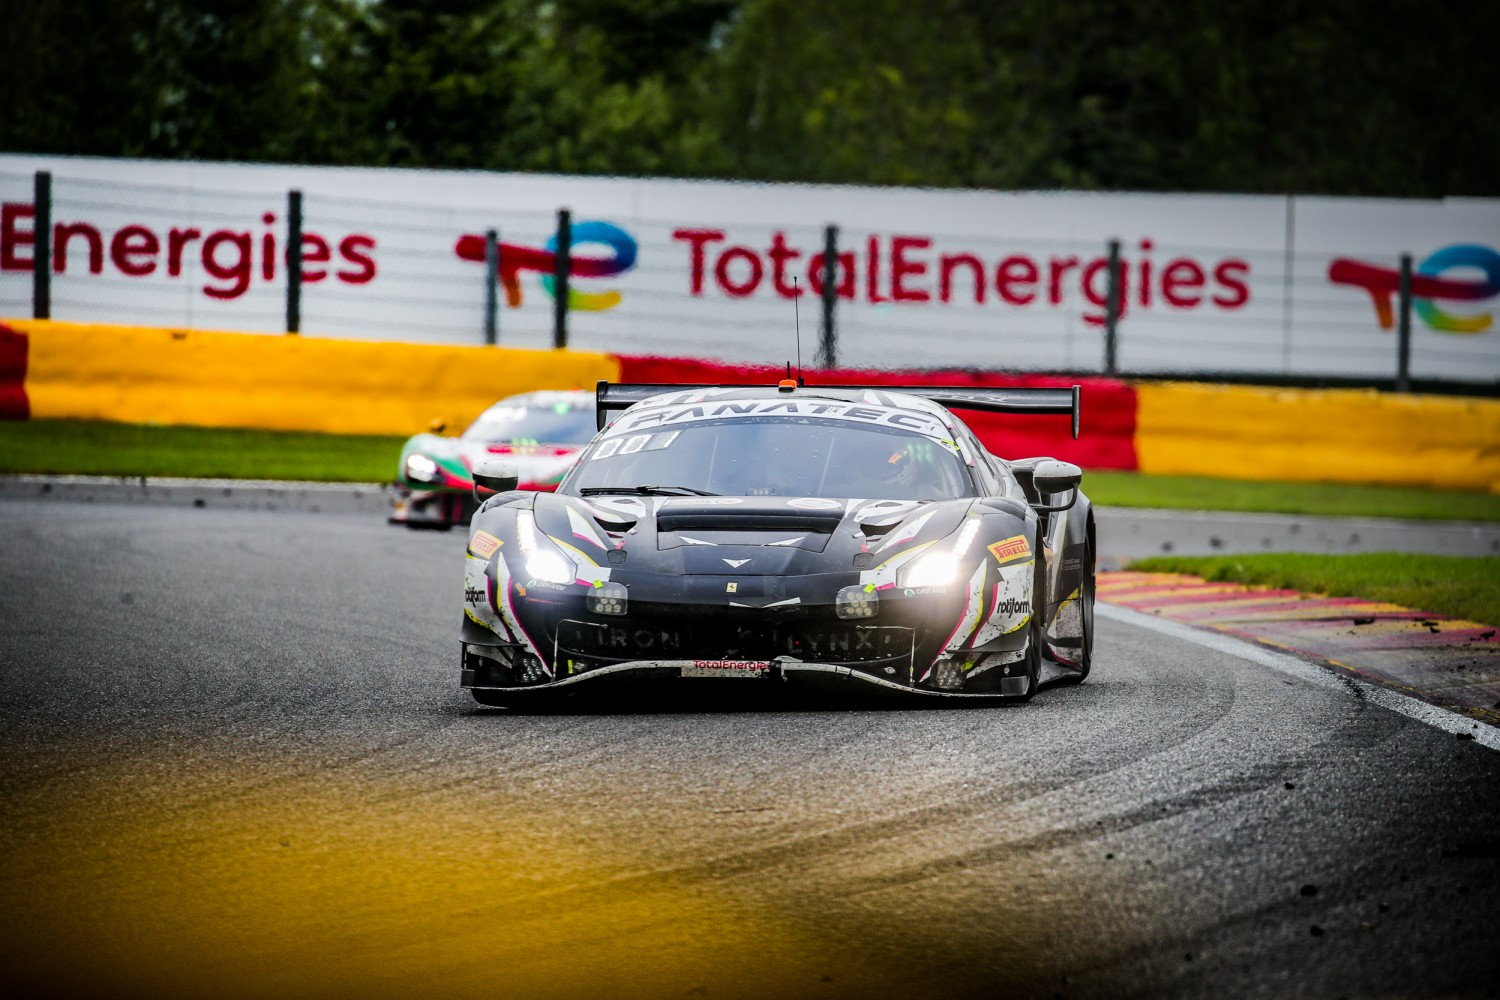 Iron Lynx Ferrari takes an option on win in 2021 TotalEnergies 24 Hours of Spa